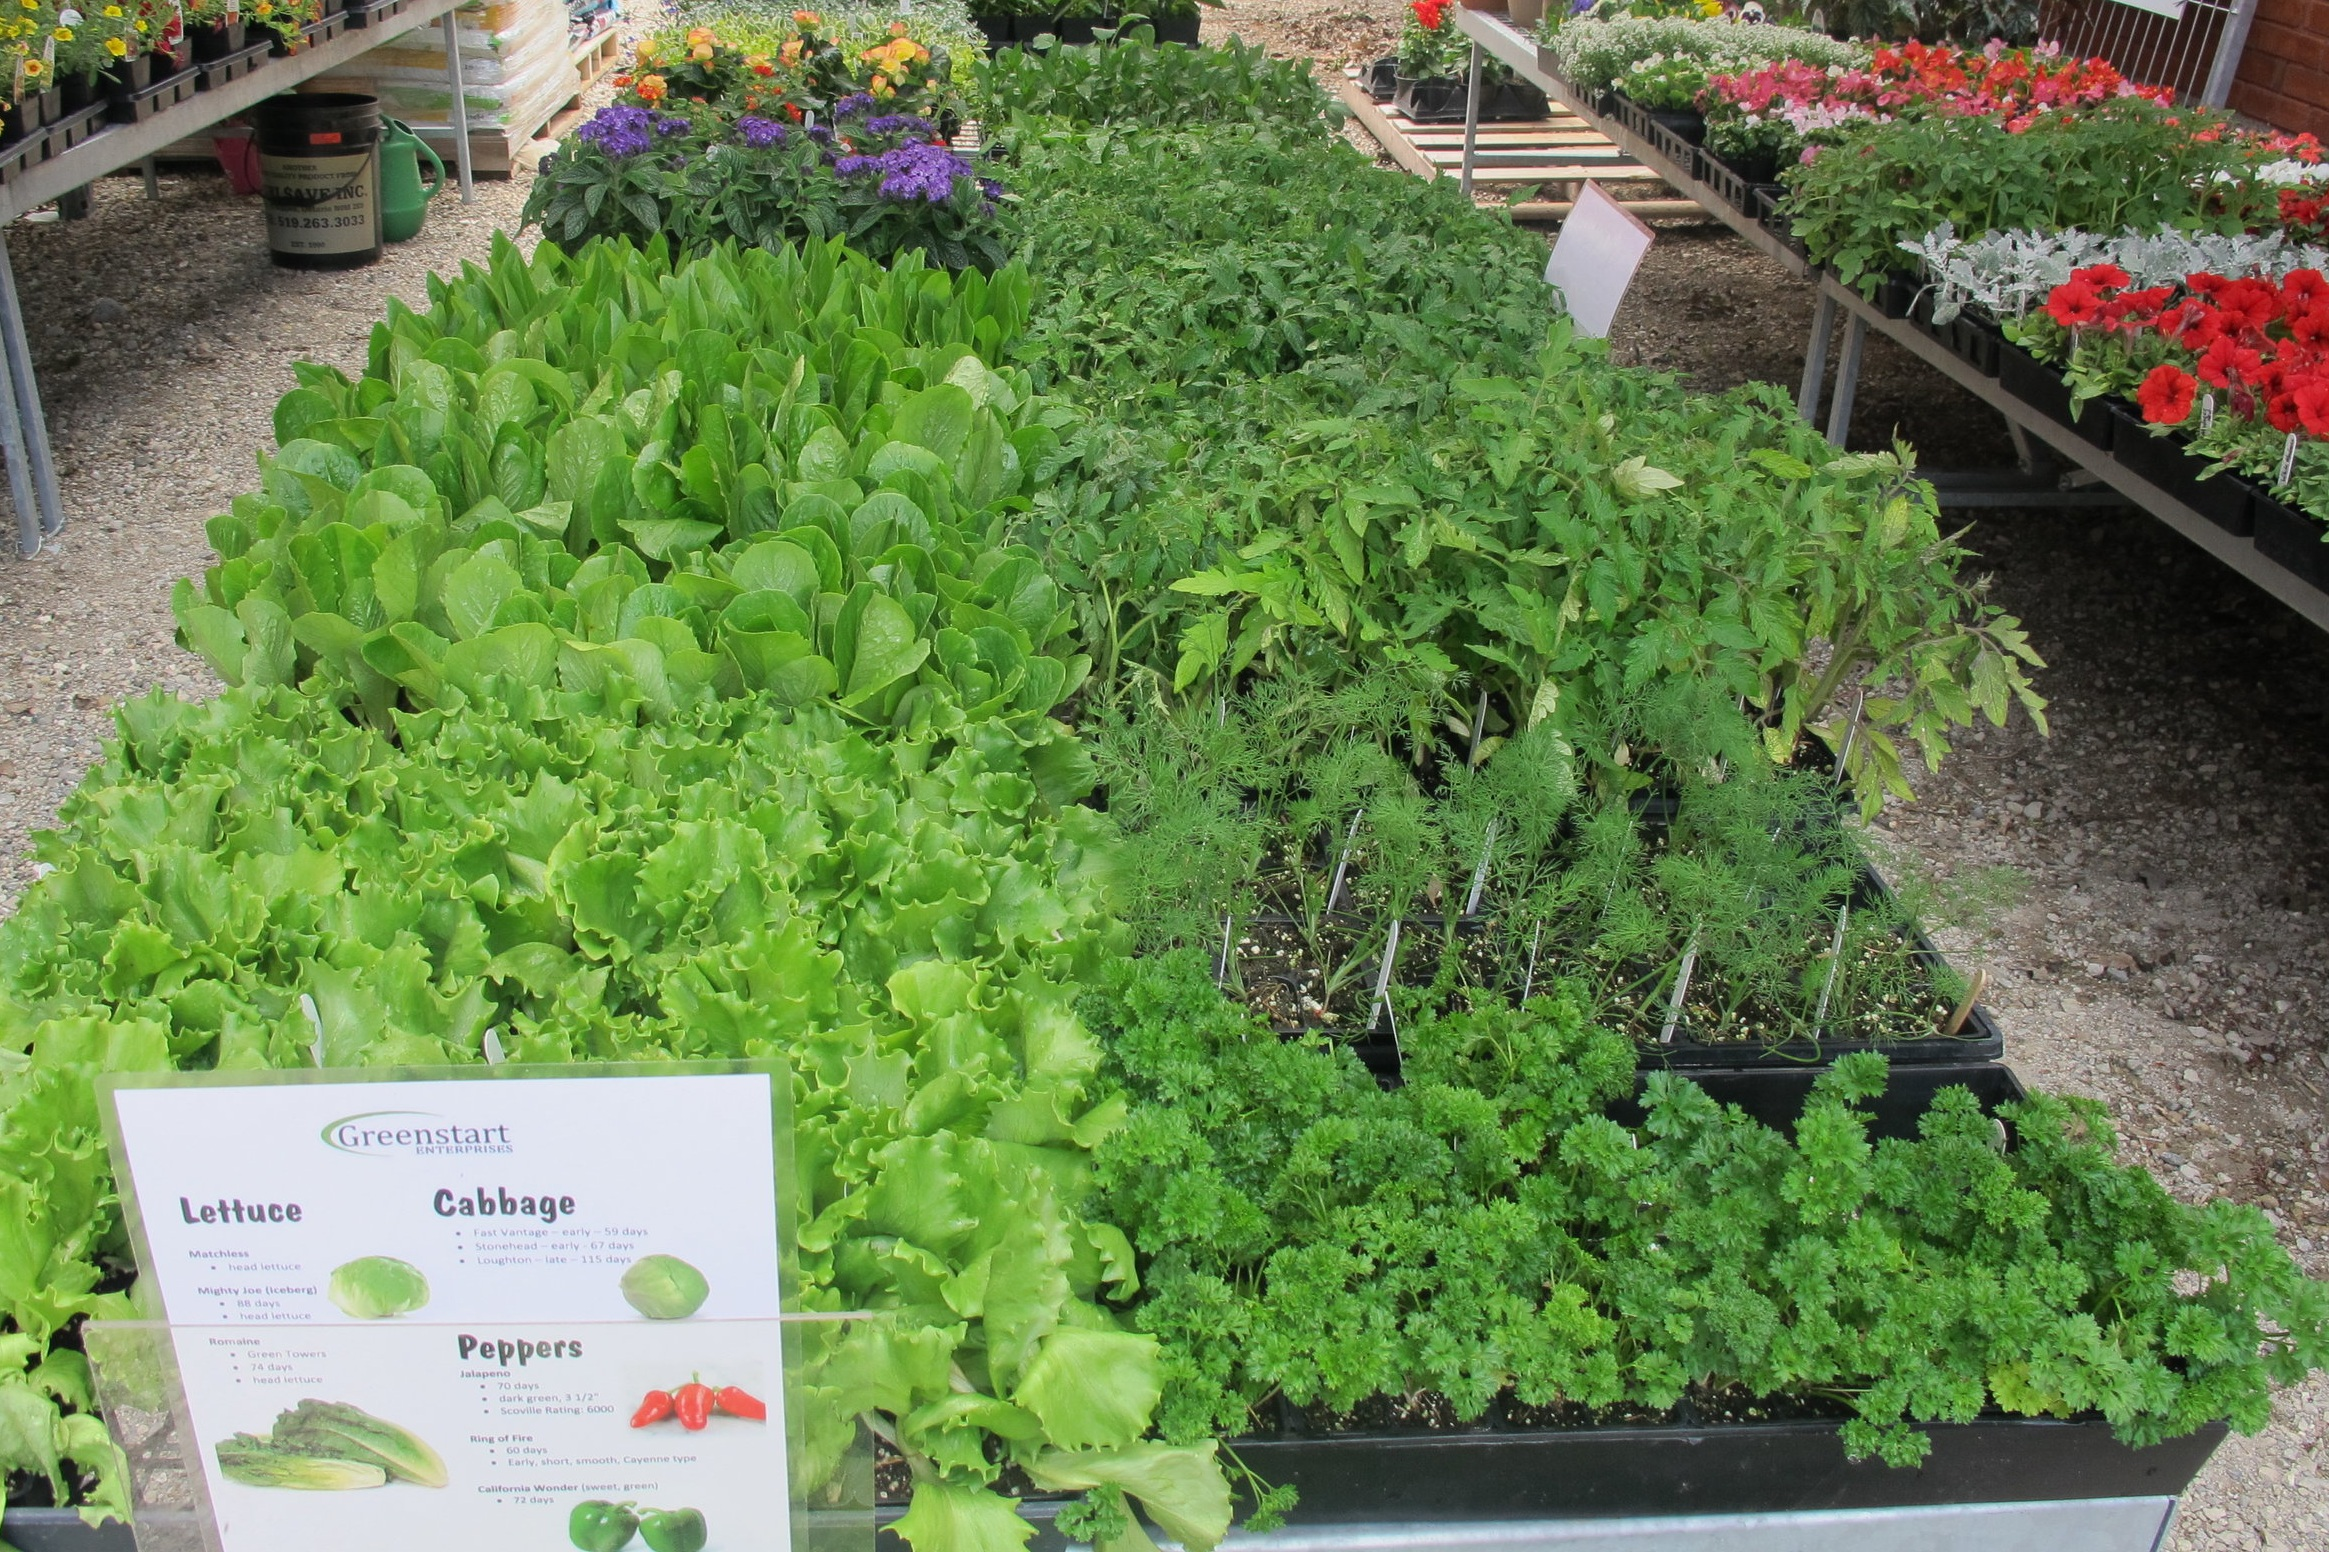 Vegetables - Lettuce, parsley, tomato (including Heritage varieties), peppers (sweet & hot), late & early varieties of cabbage.